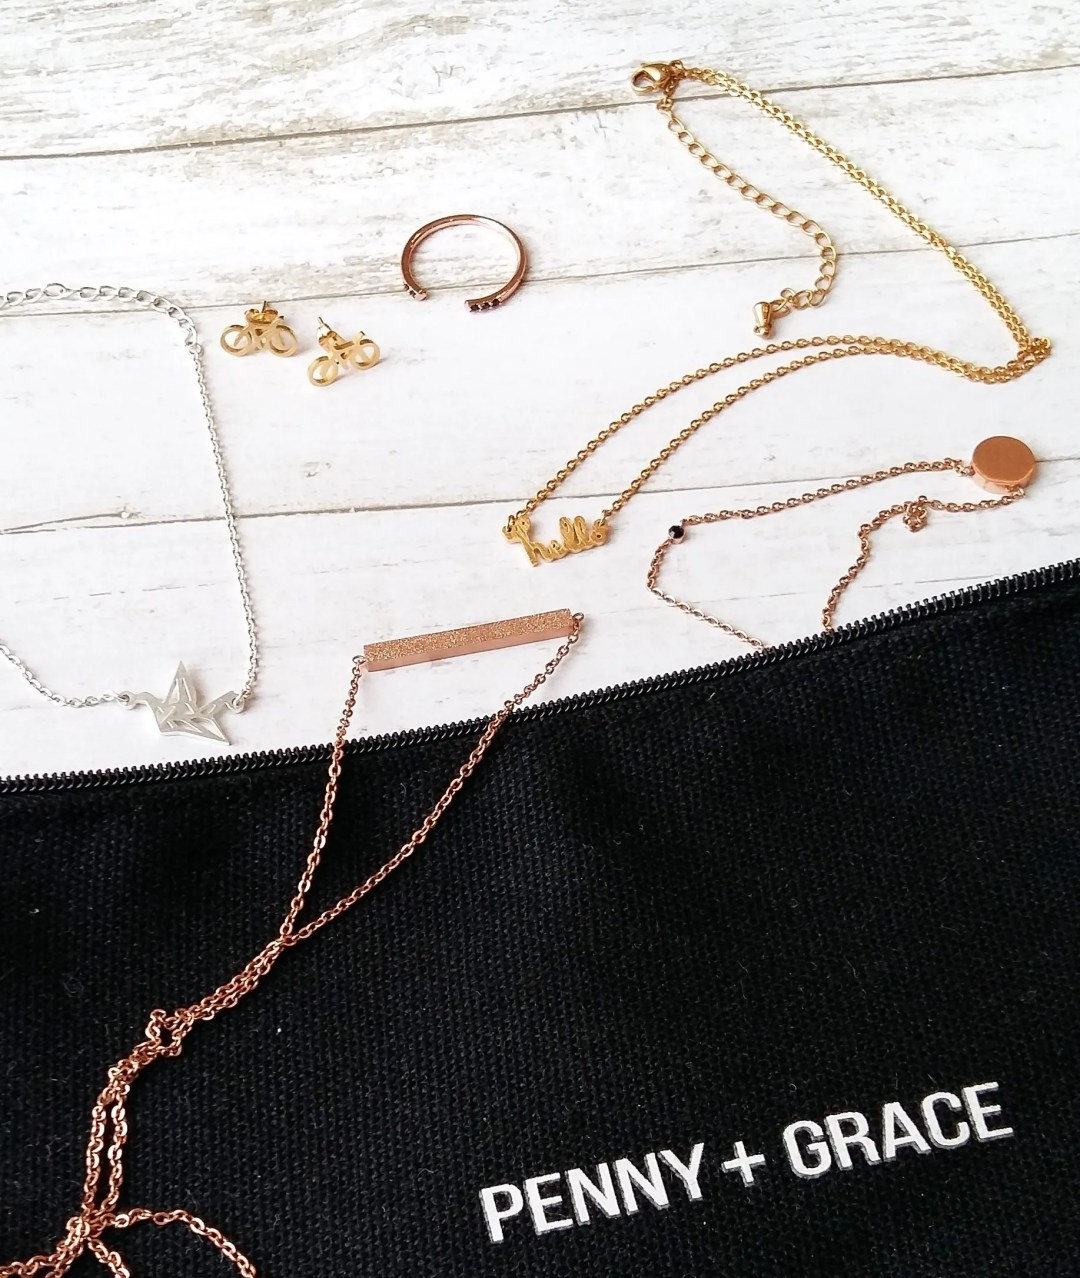 Penny + Grace is an amazing monthly jewellery subscription. Receive 3 coordinated feminine pieces in classic finishes for affordable pricing!